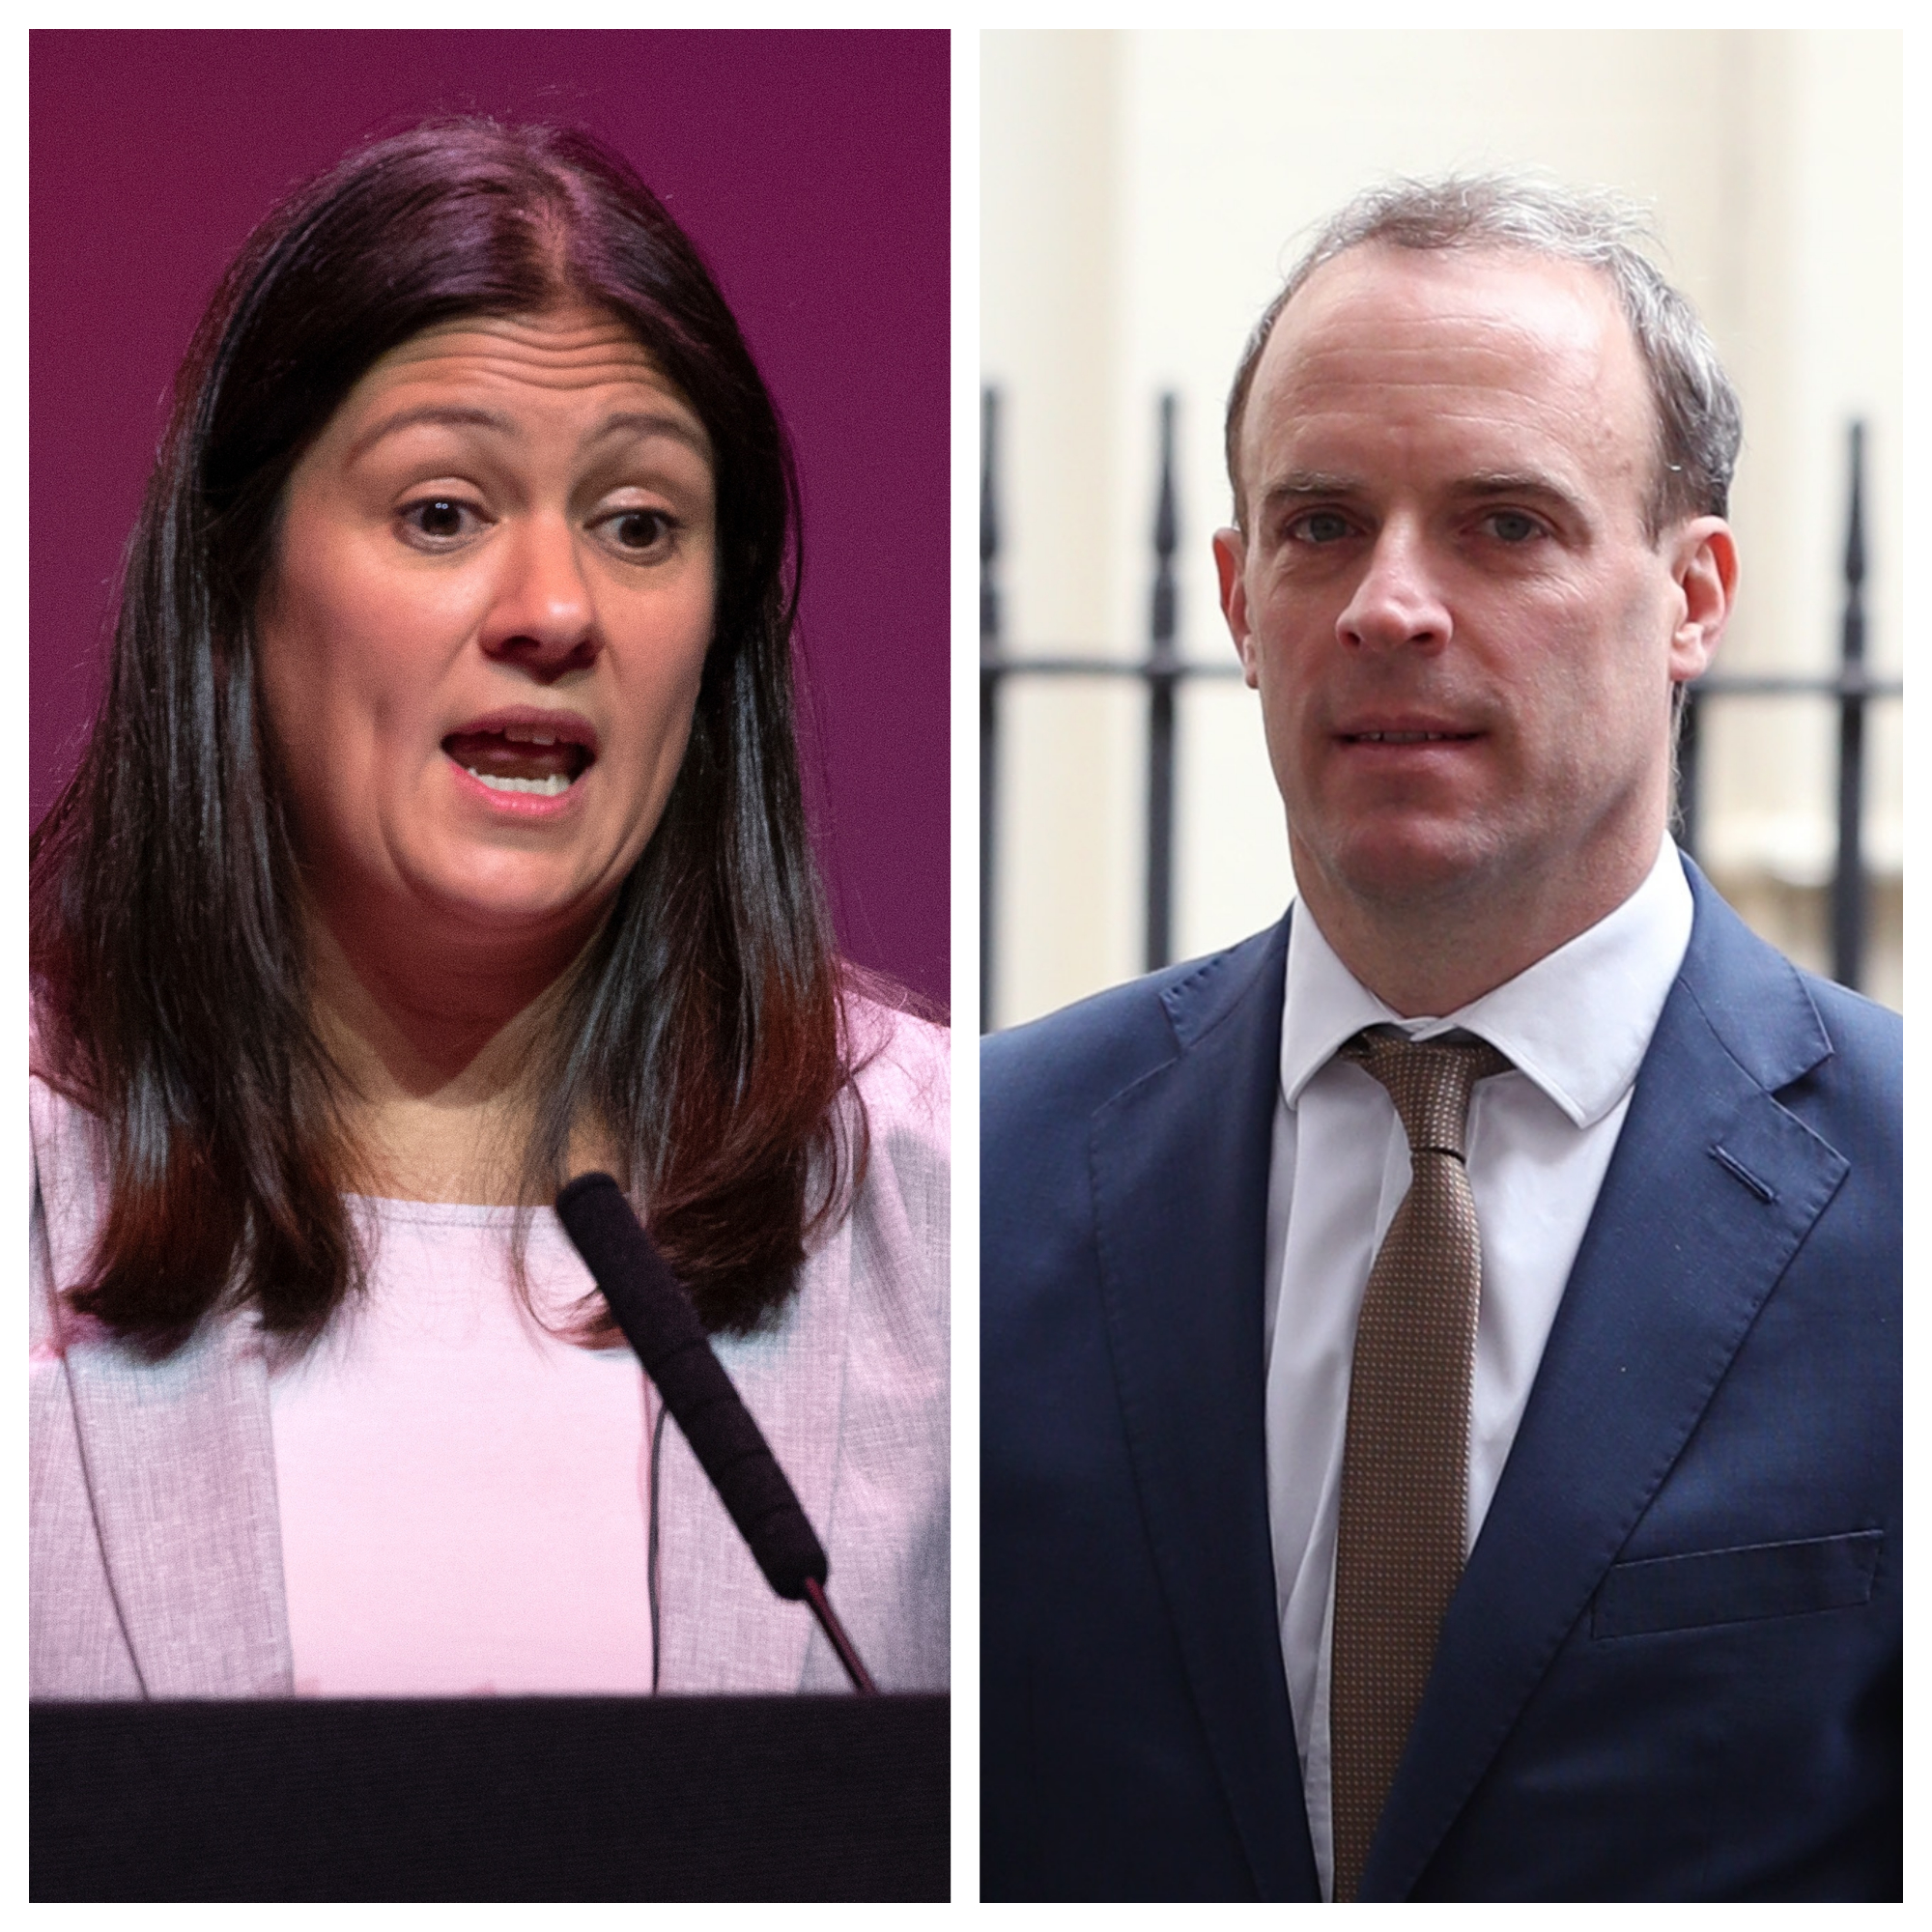 Lisa Nandy and Dominic Raab